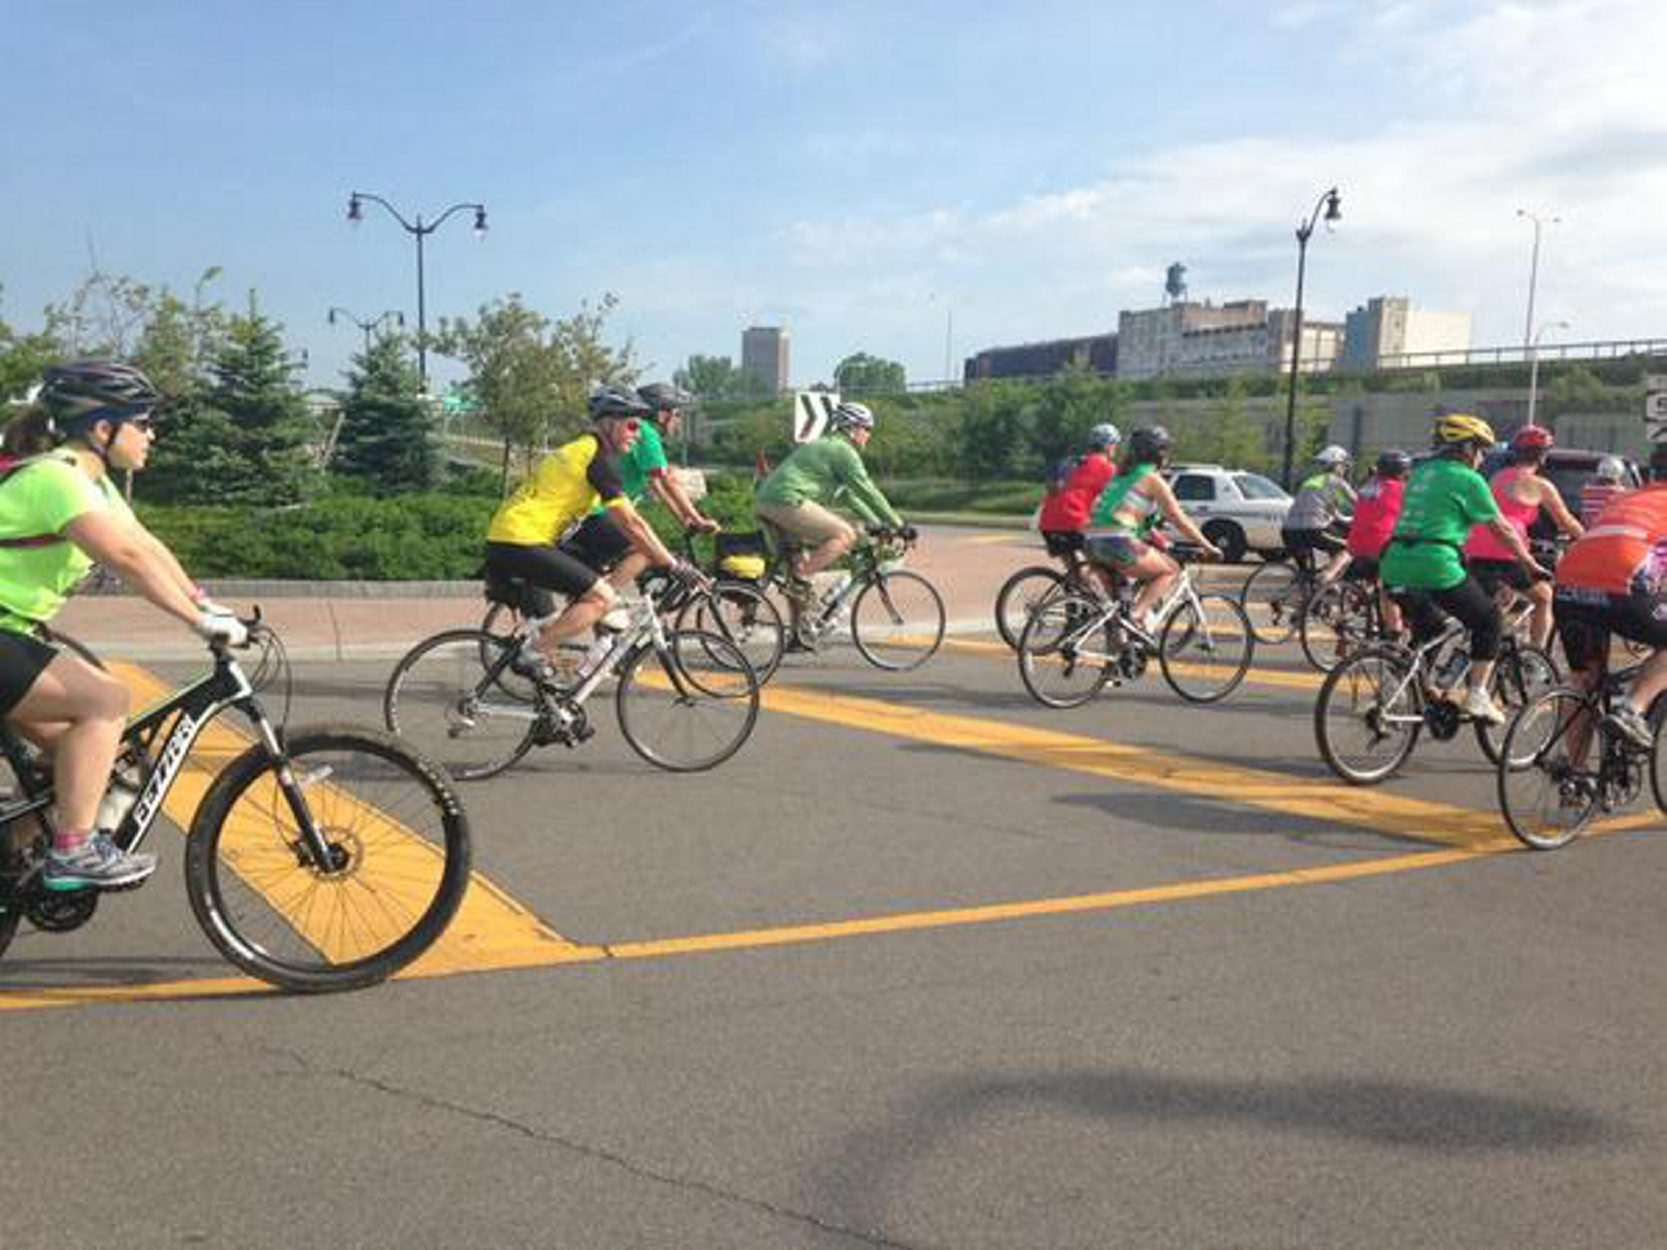 Riders at the start of the 2015 Skyride at Outer Harbor. (John Hickey/Buffalo News)